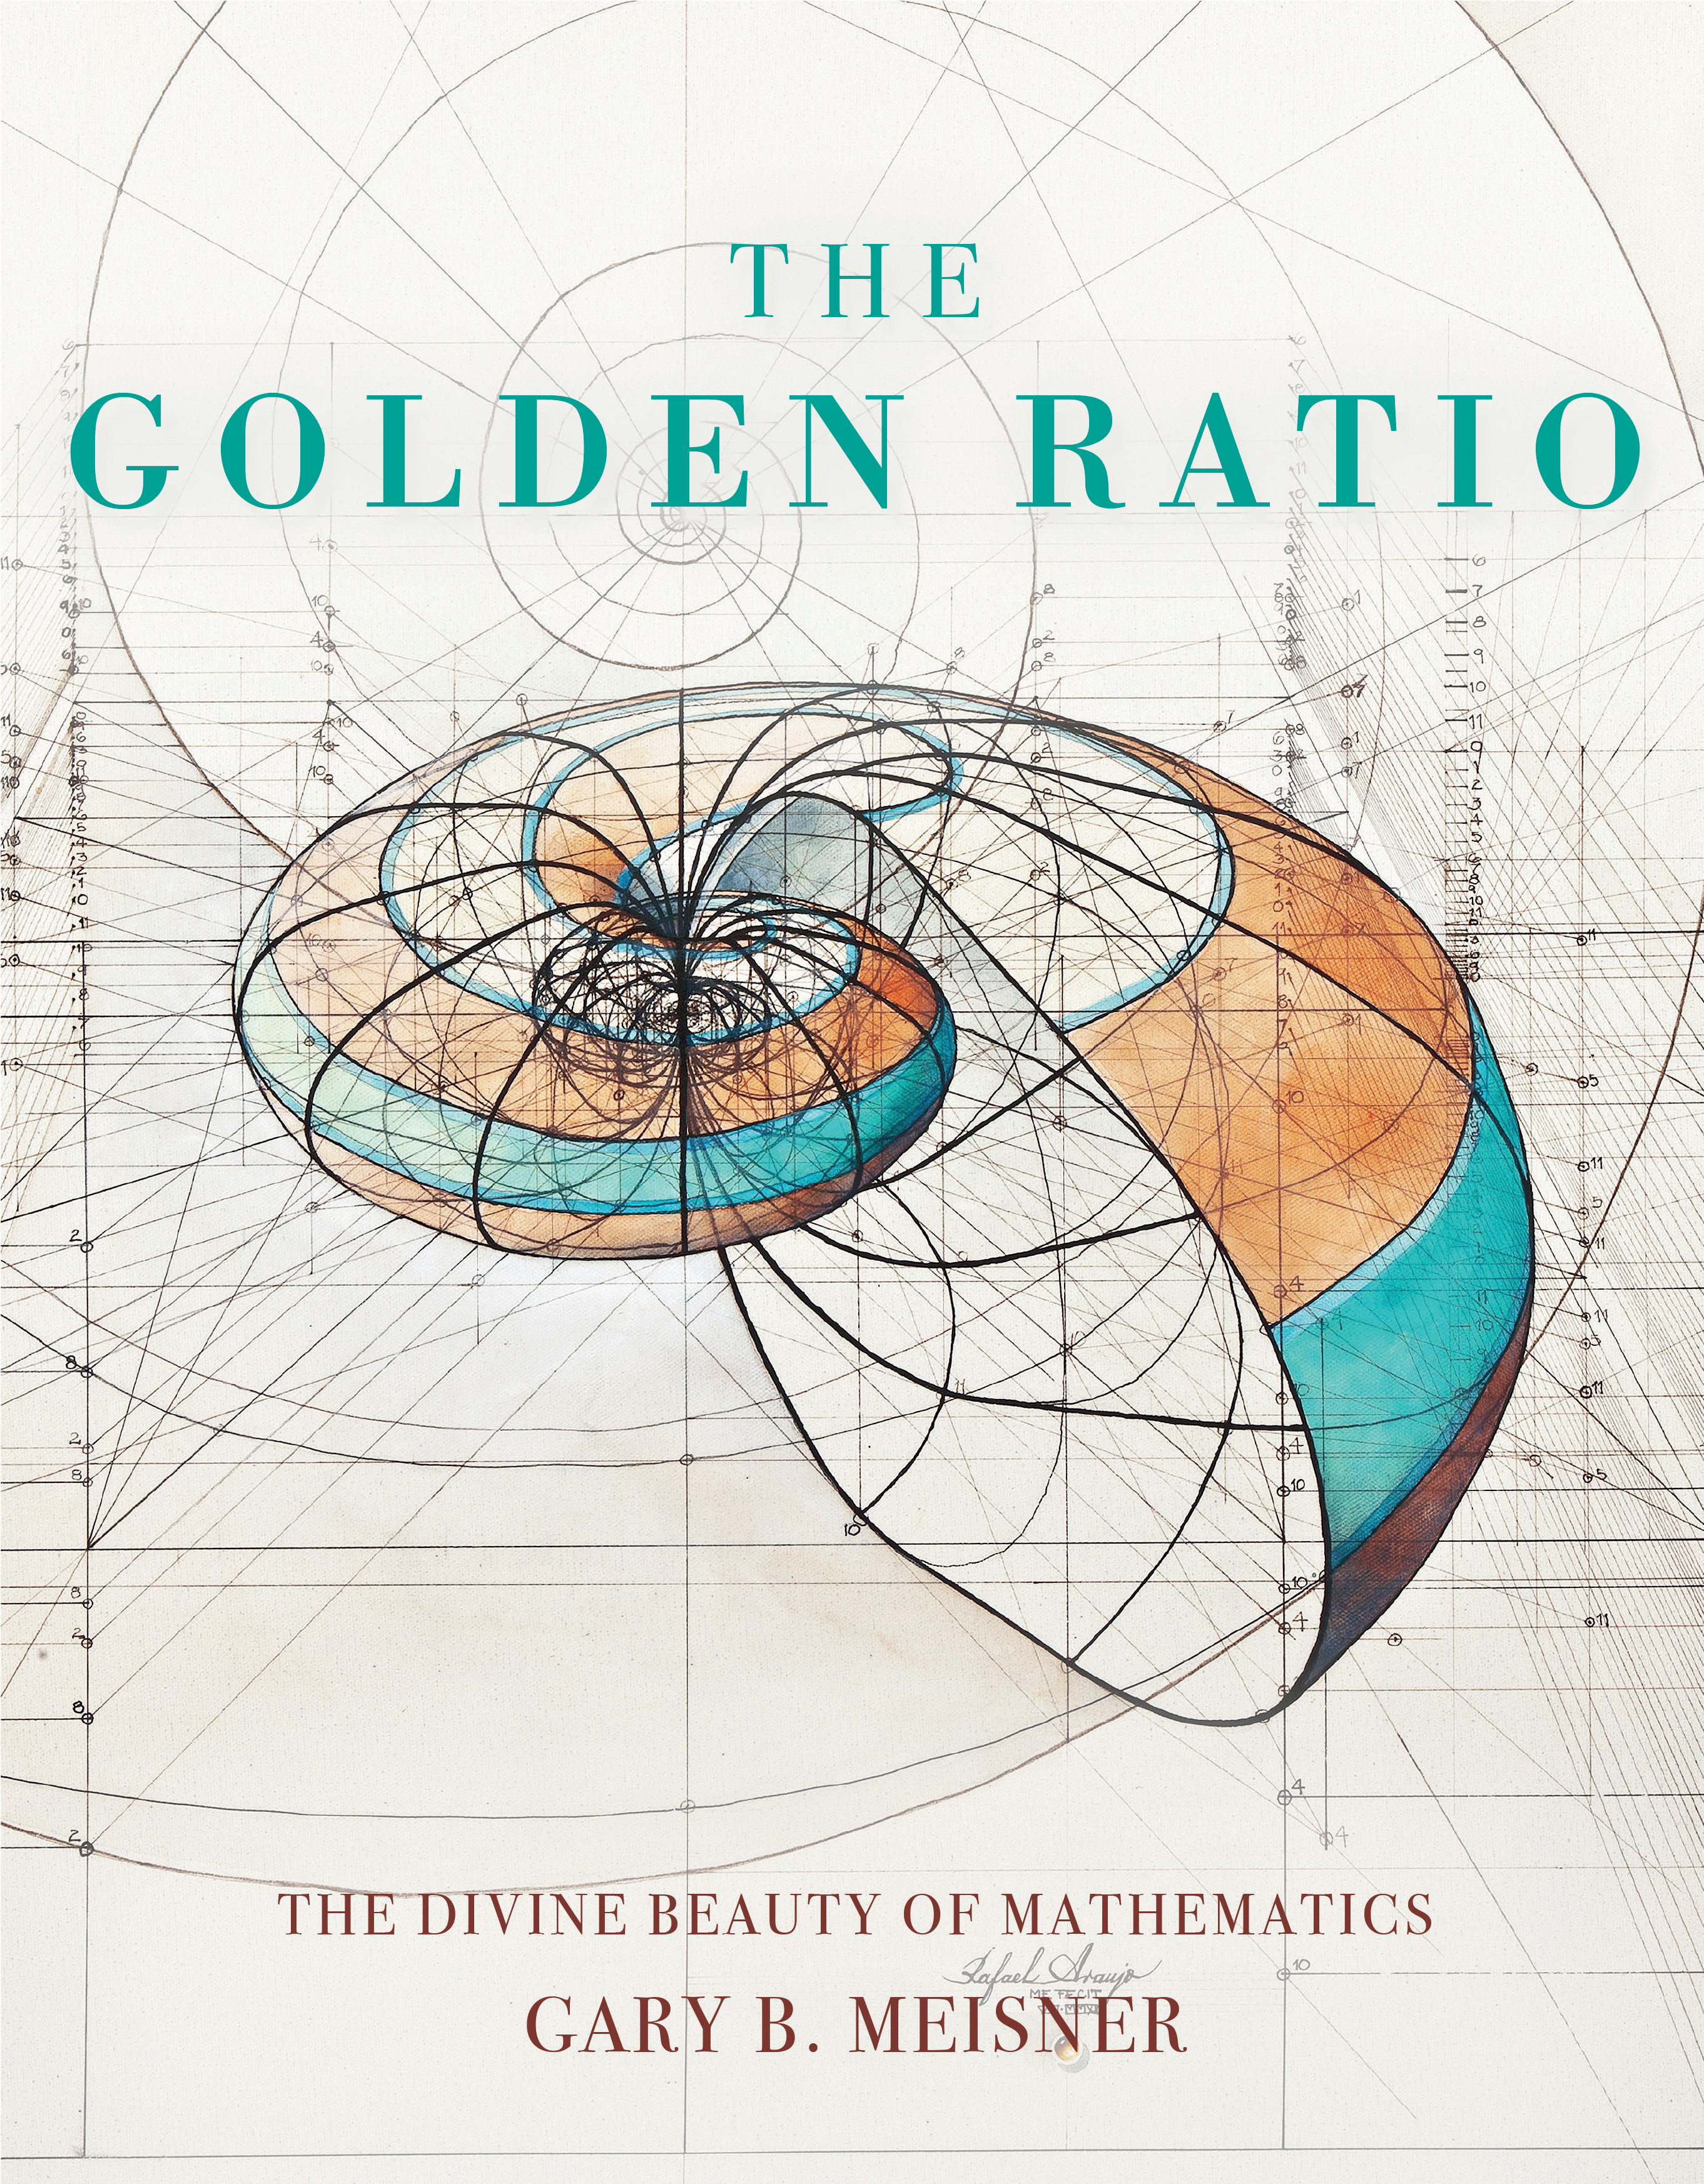 The Golden Ratio Rafael Araujo And Gary B Meisner 9781631064869 Murdoch Books